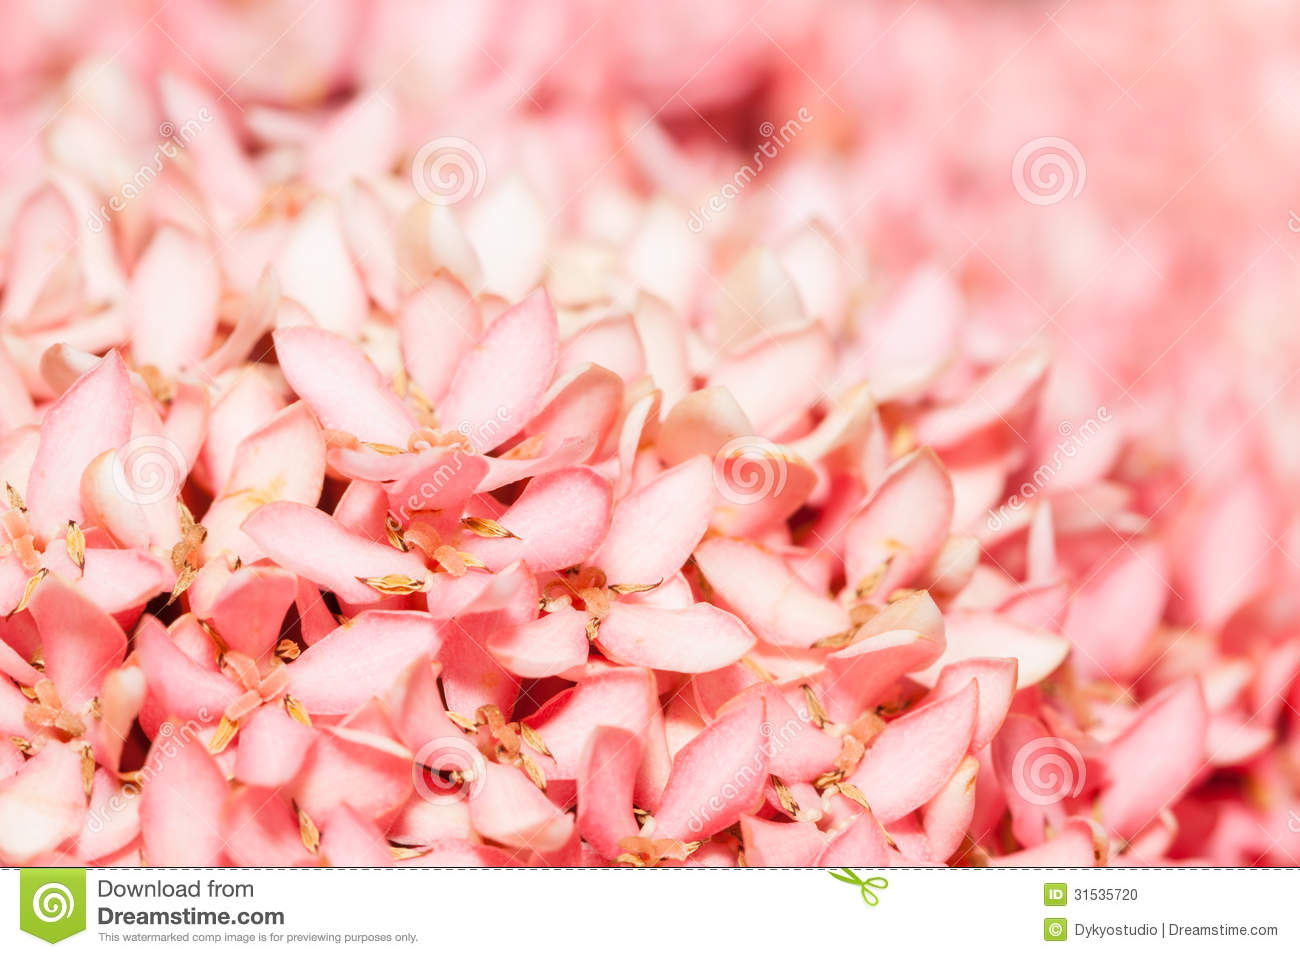 Pink jasmine flowers 40 background hdflowerwallpaper pink jasmine flowers hd wallpaper izmirmasajfo